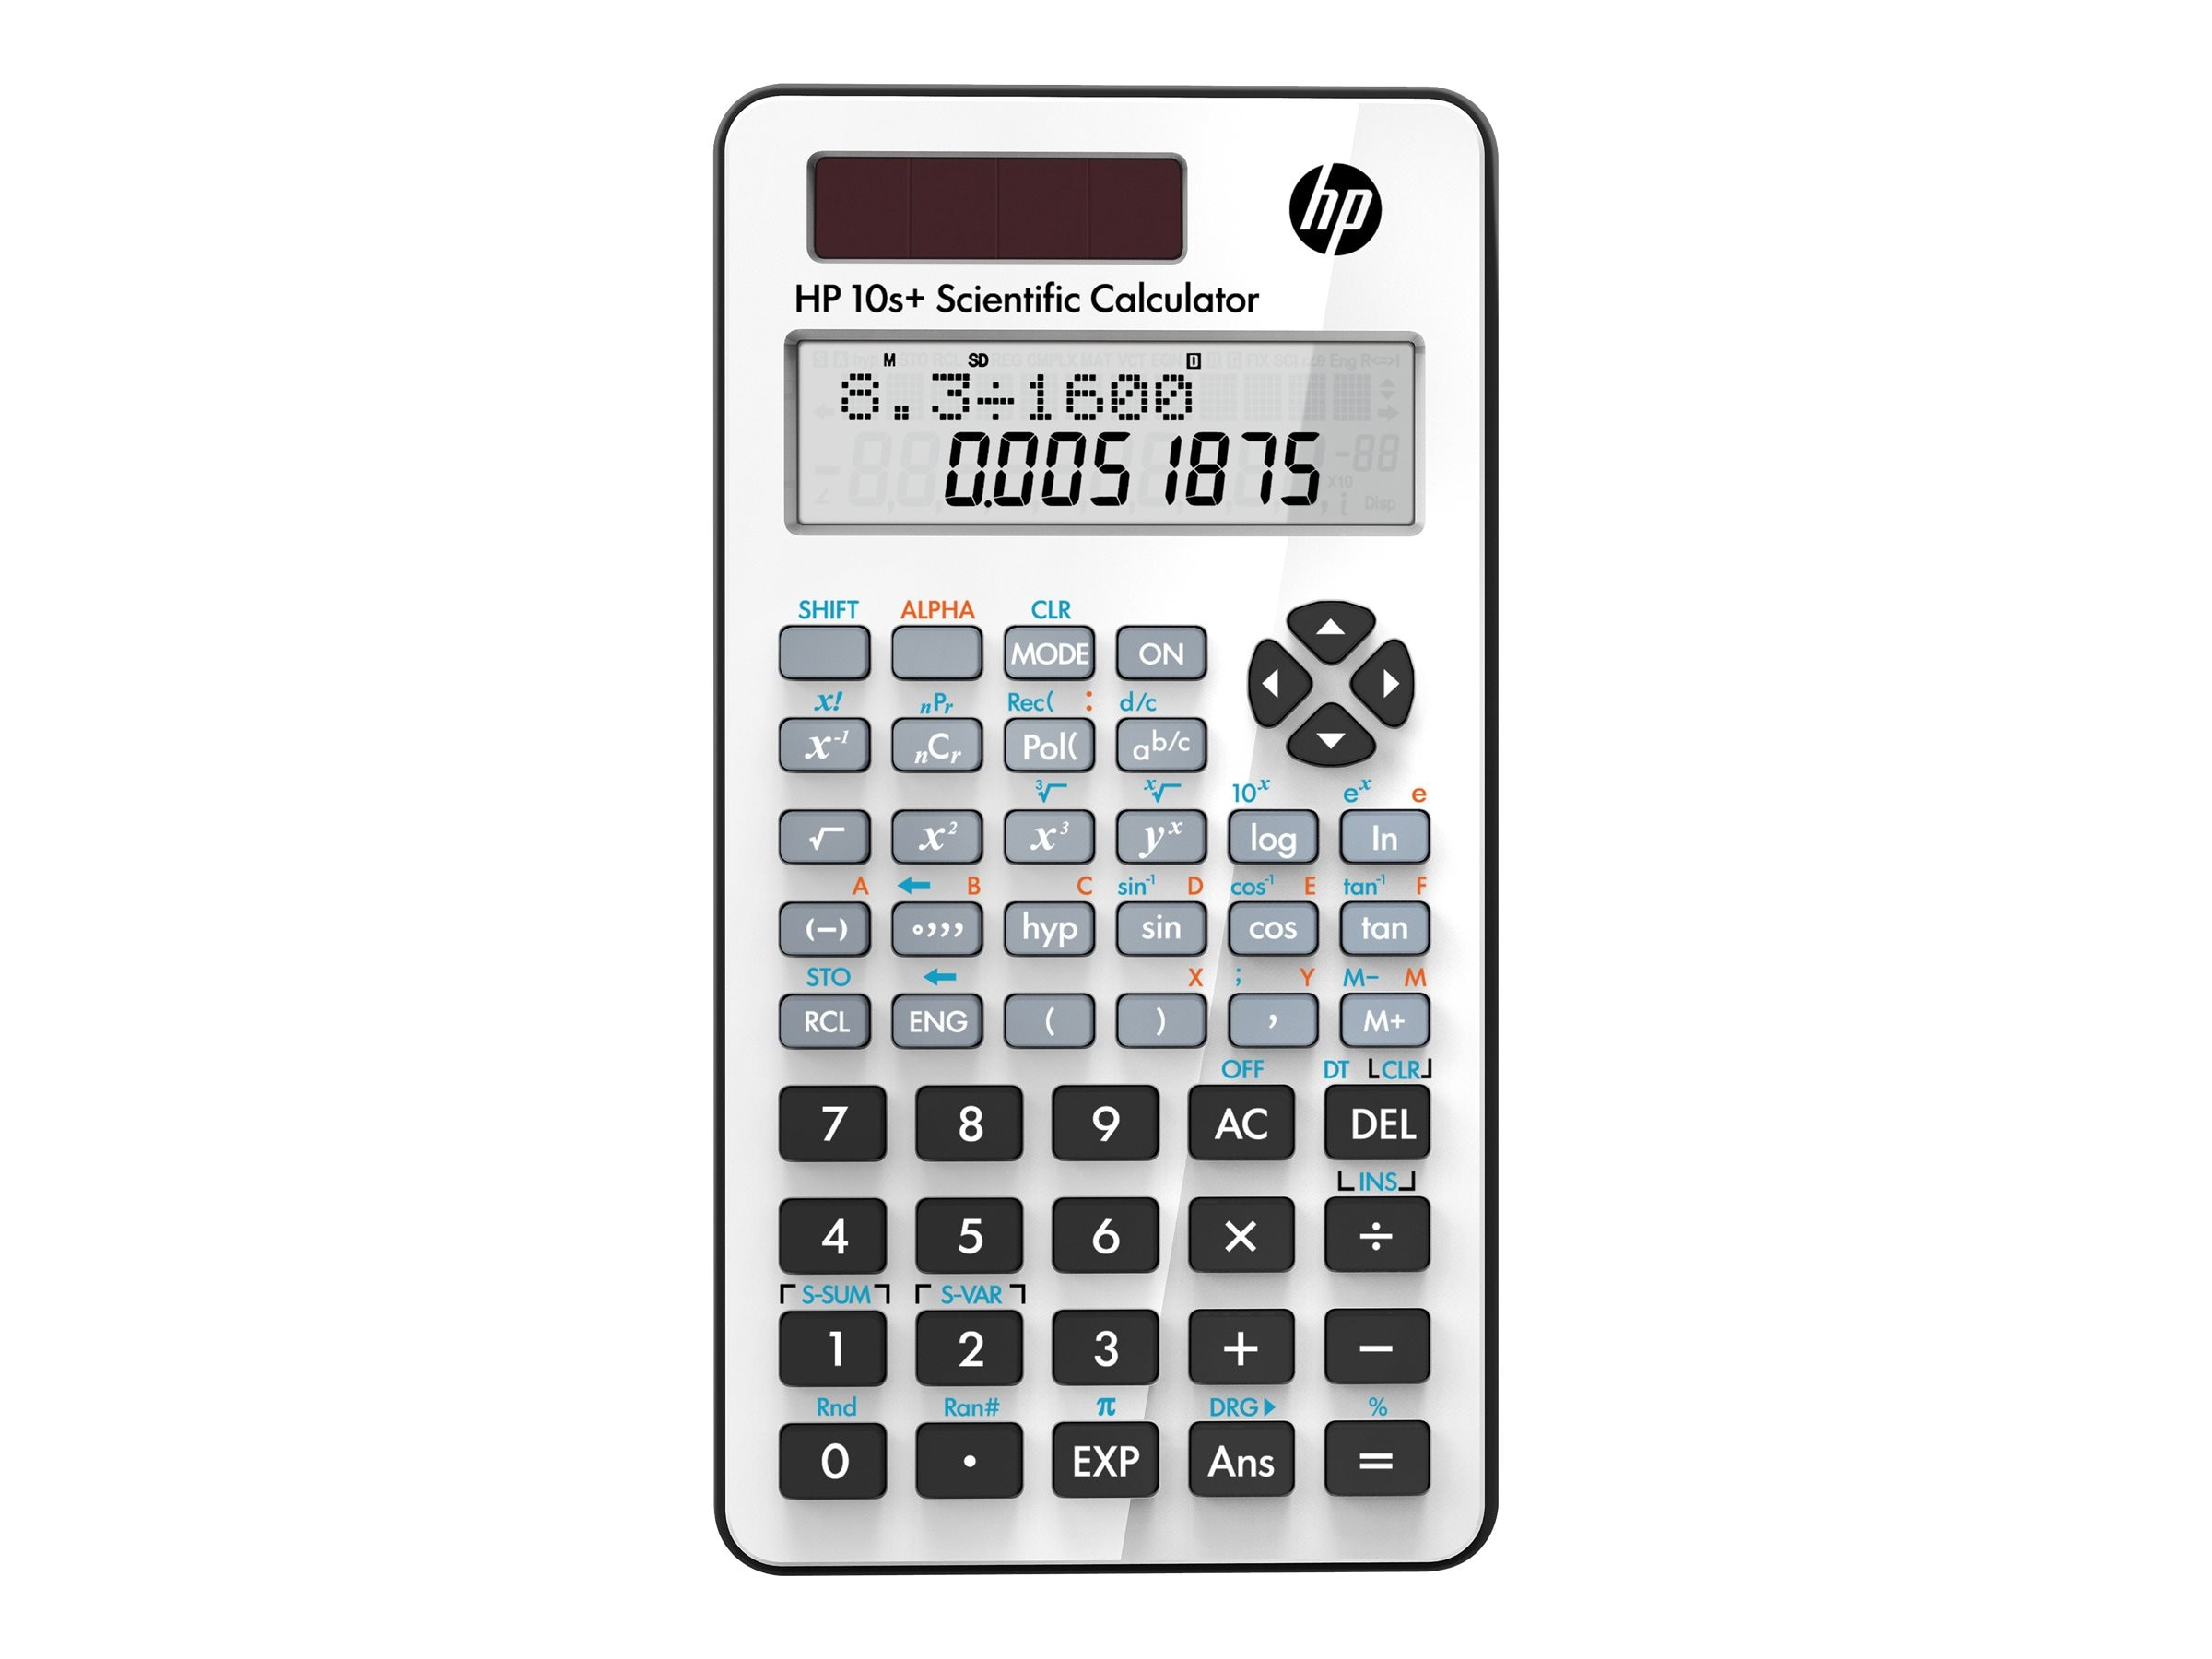 HP 10s+ Scientific Calculator, White, NW276AA#ABA, 15237561, Calculators